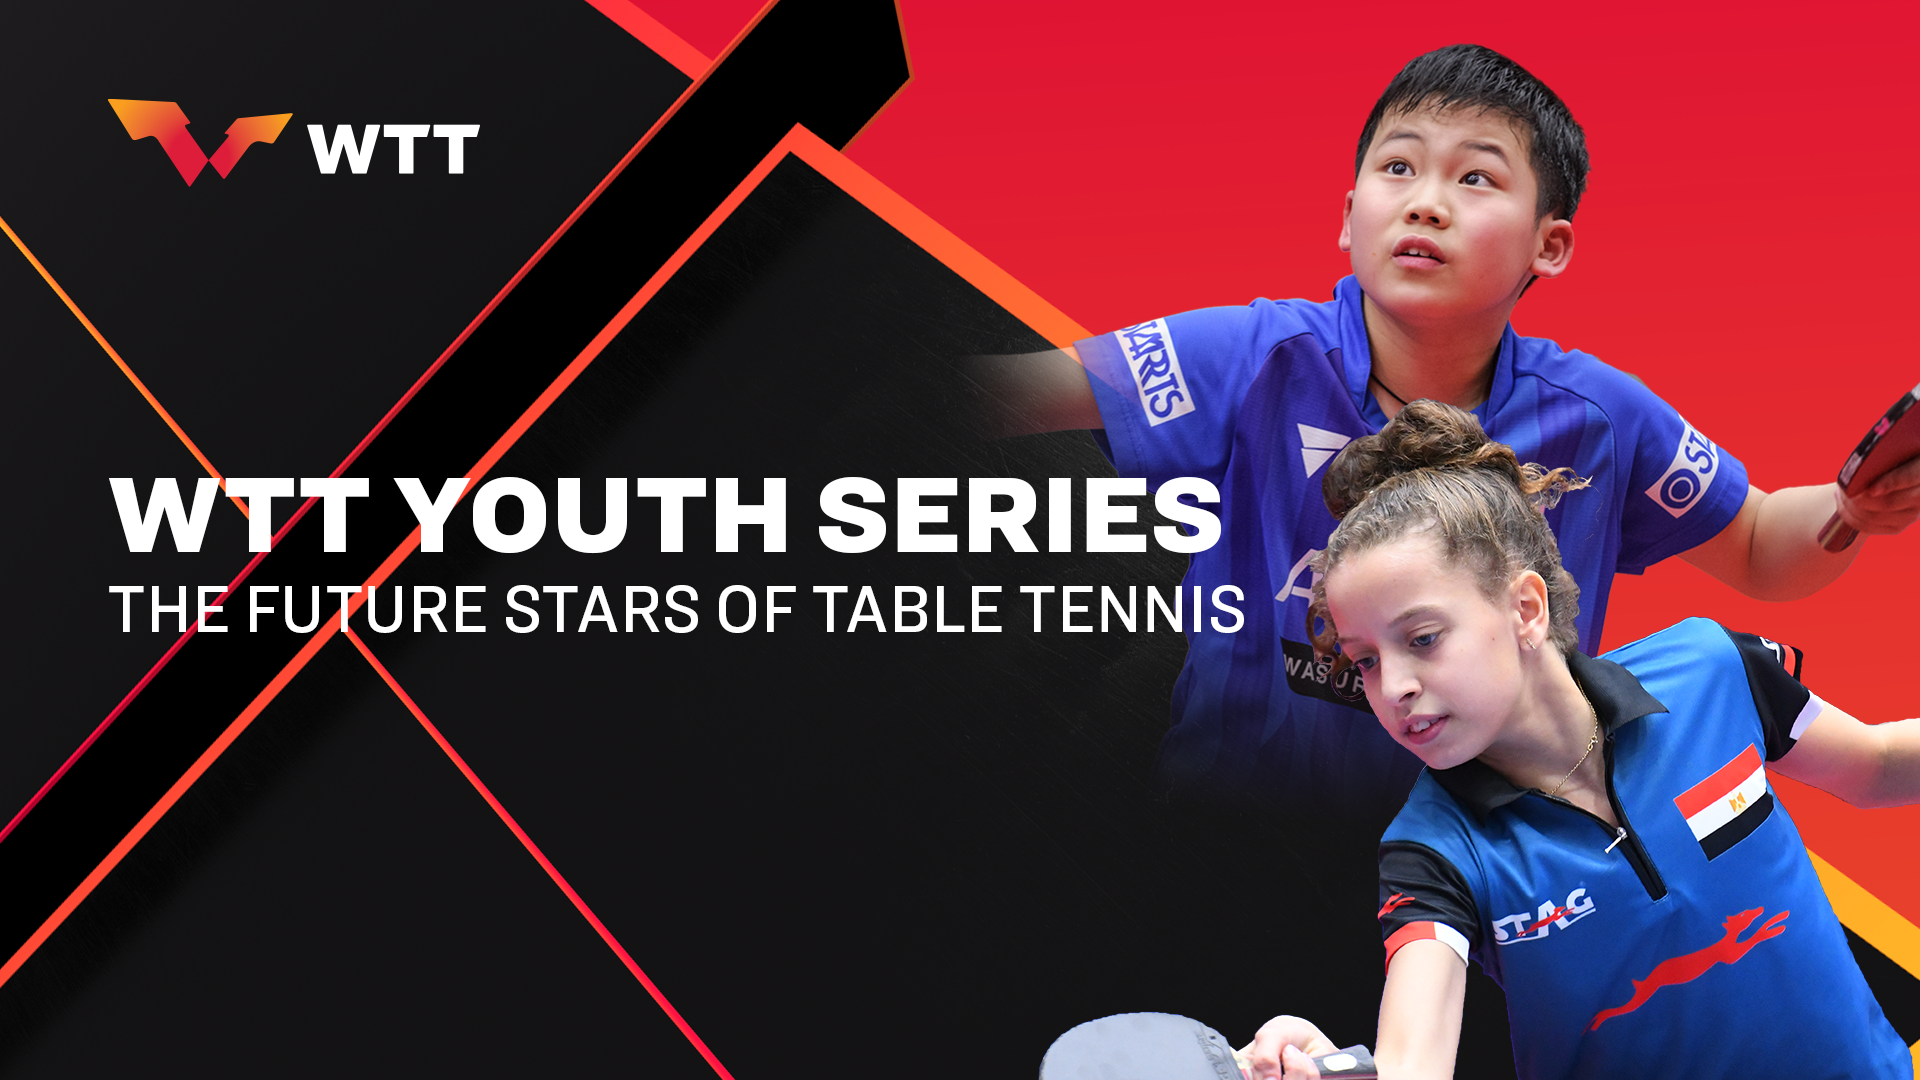 World Table Tennis Youth Series to launch in 2021